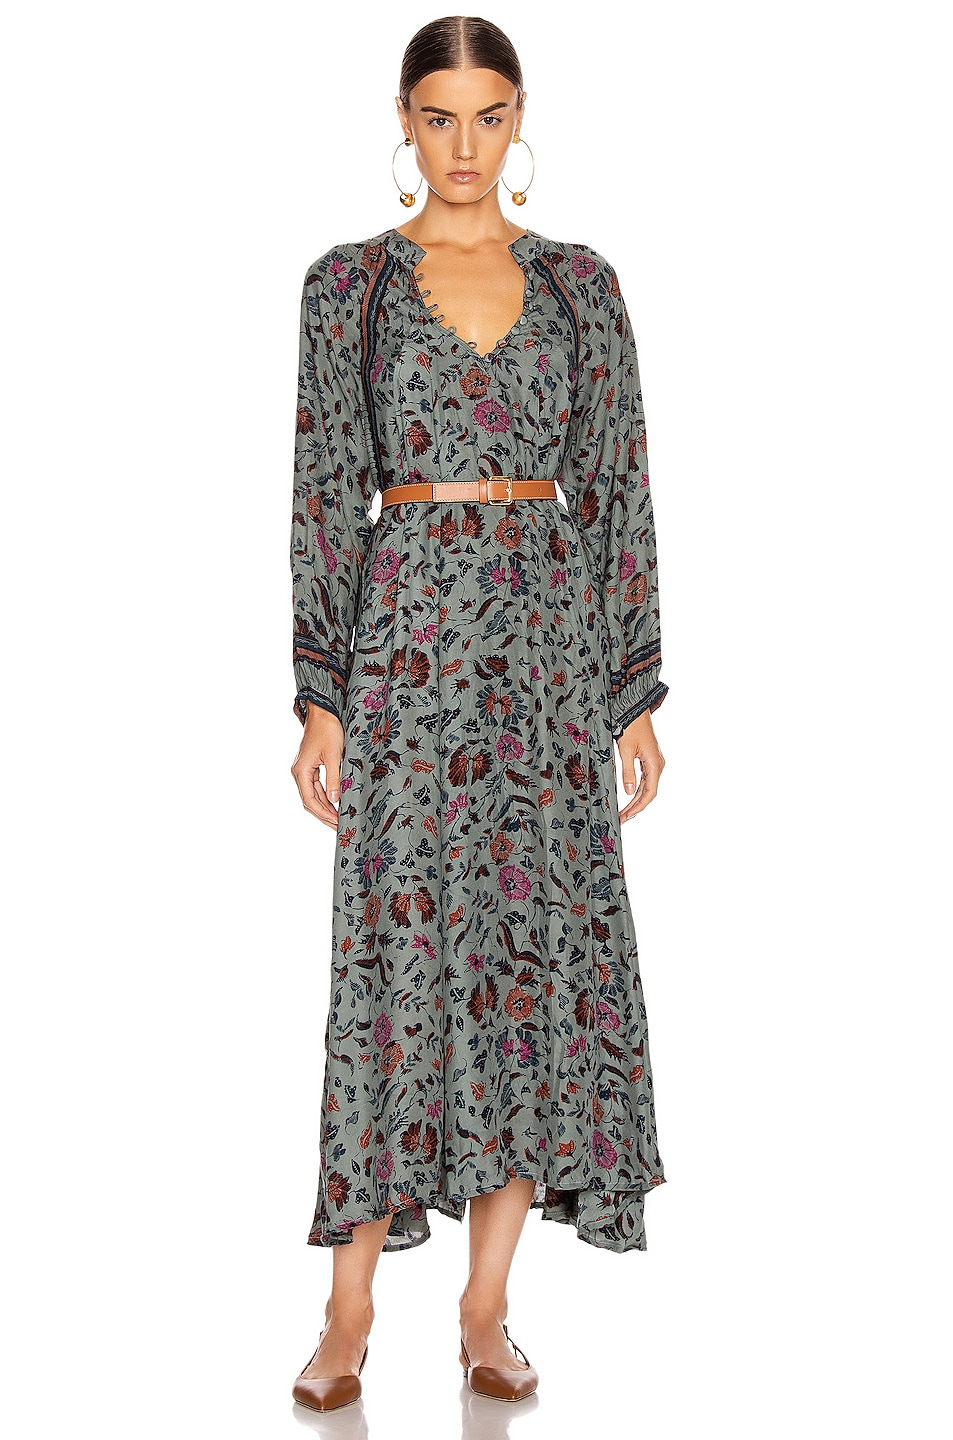 Image 1 of Natalie Martin Fiore Maxi Dress in Wildflower Slate